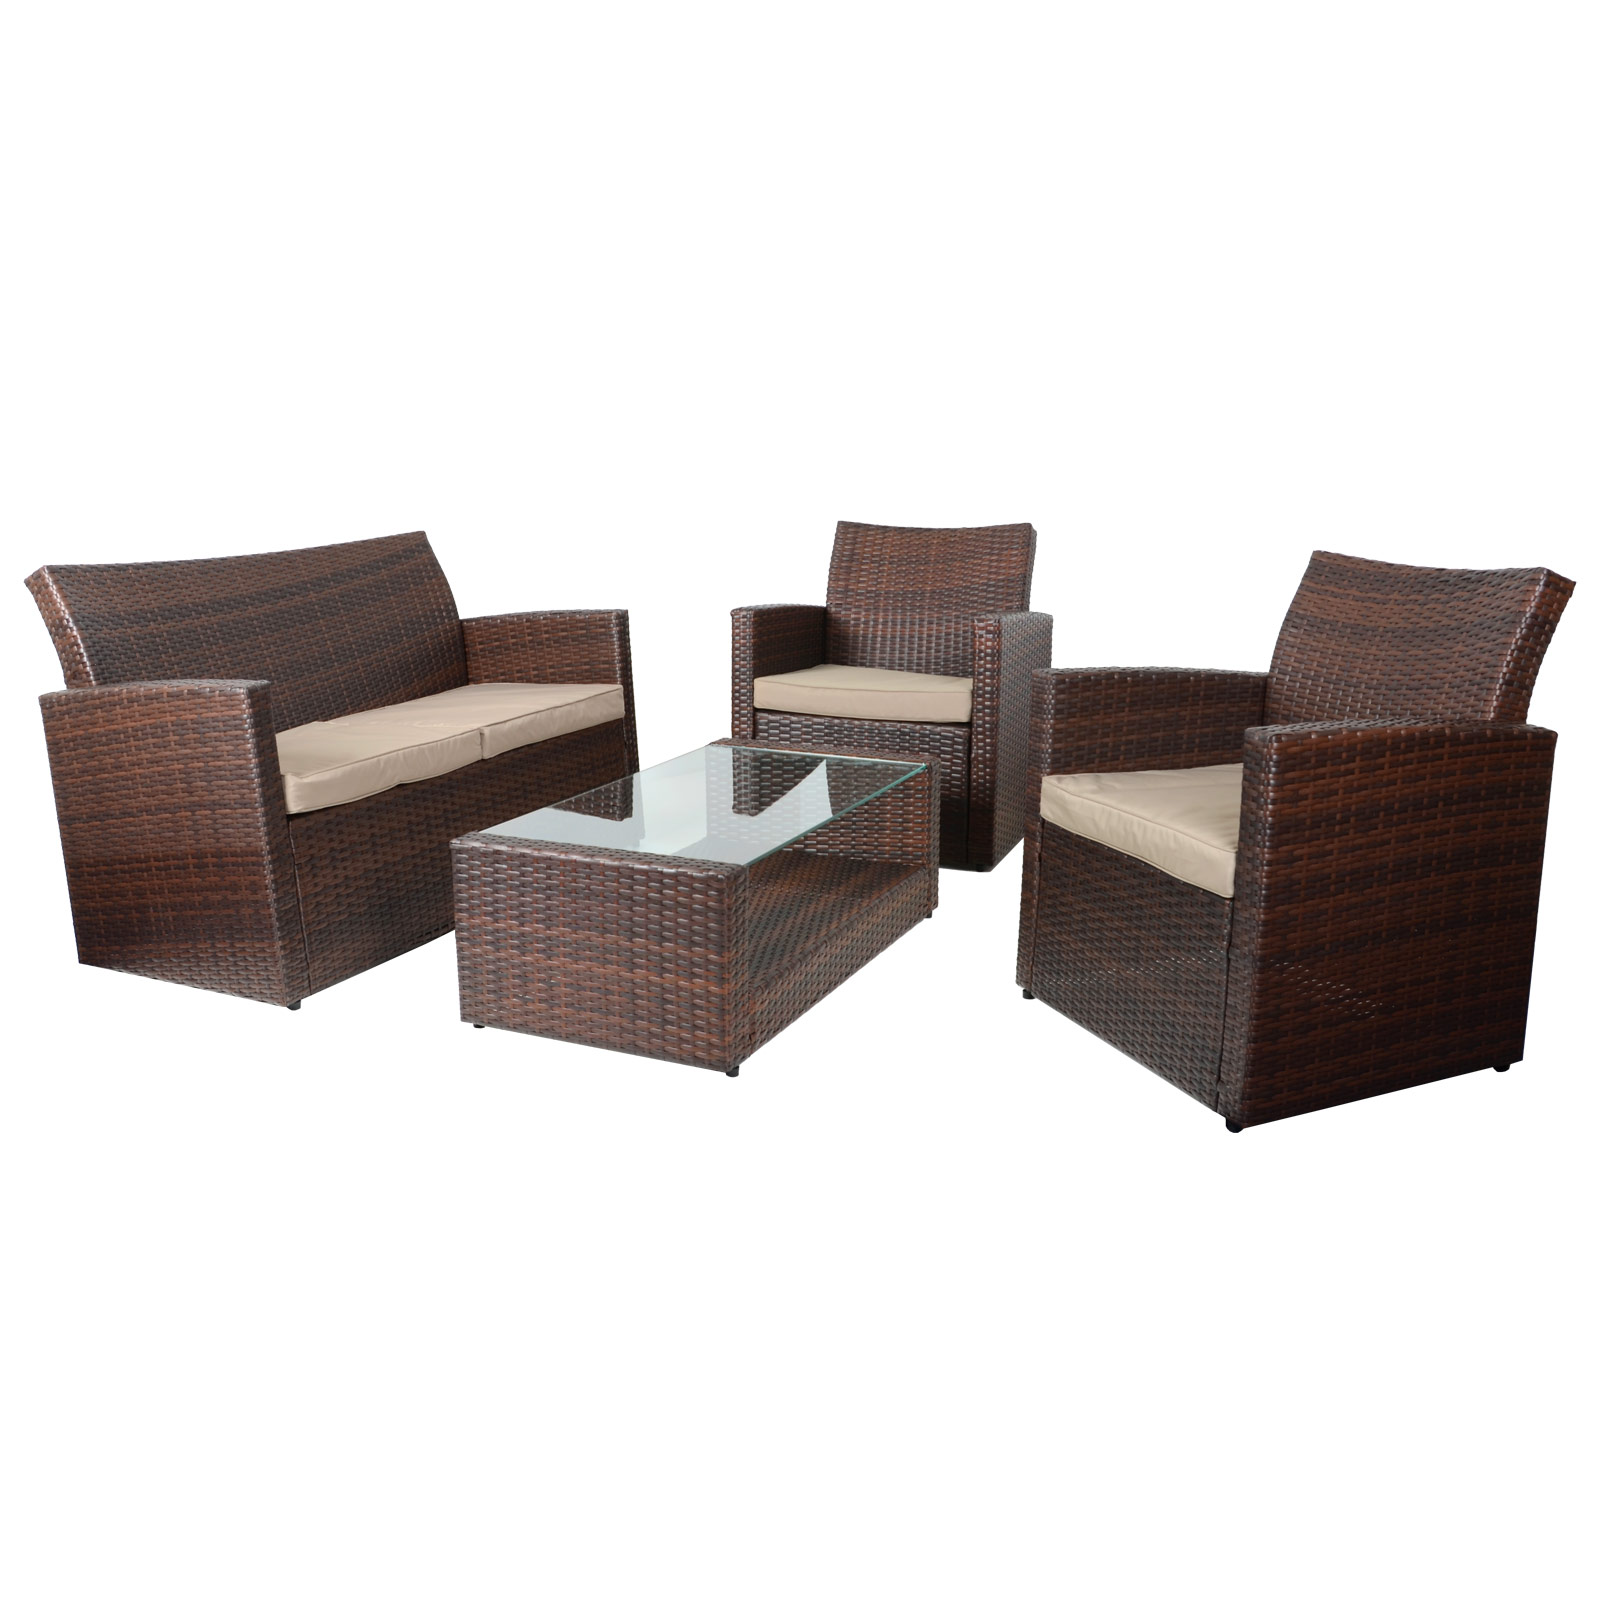 4pc Tuscany Rattan Wicker Sofa Set Garden Conservatory Furniture